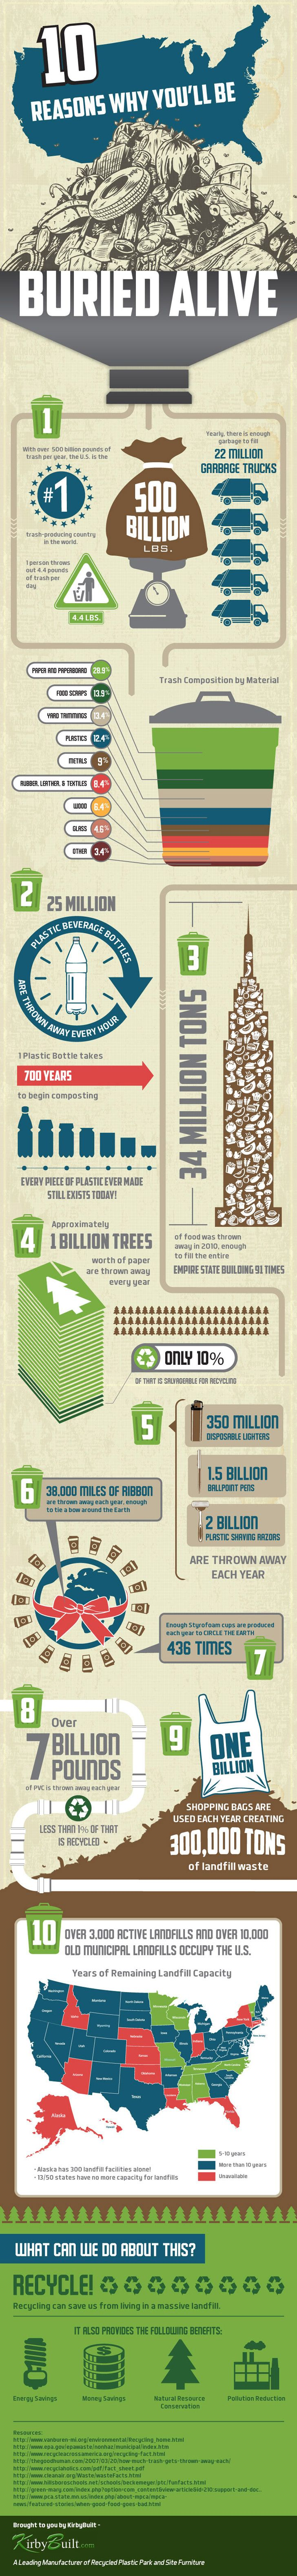 KirbyBuilt, Buried Alive Infographic, waste infographic, waste issues, trash issues, pollution, trash and the environment, trash, litter, environmental destruction